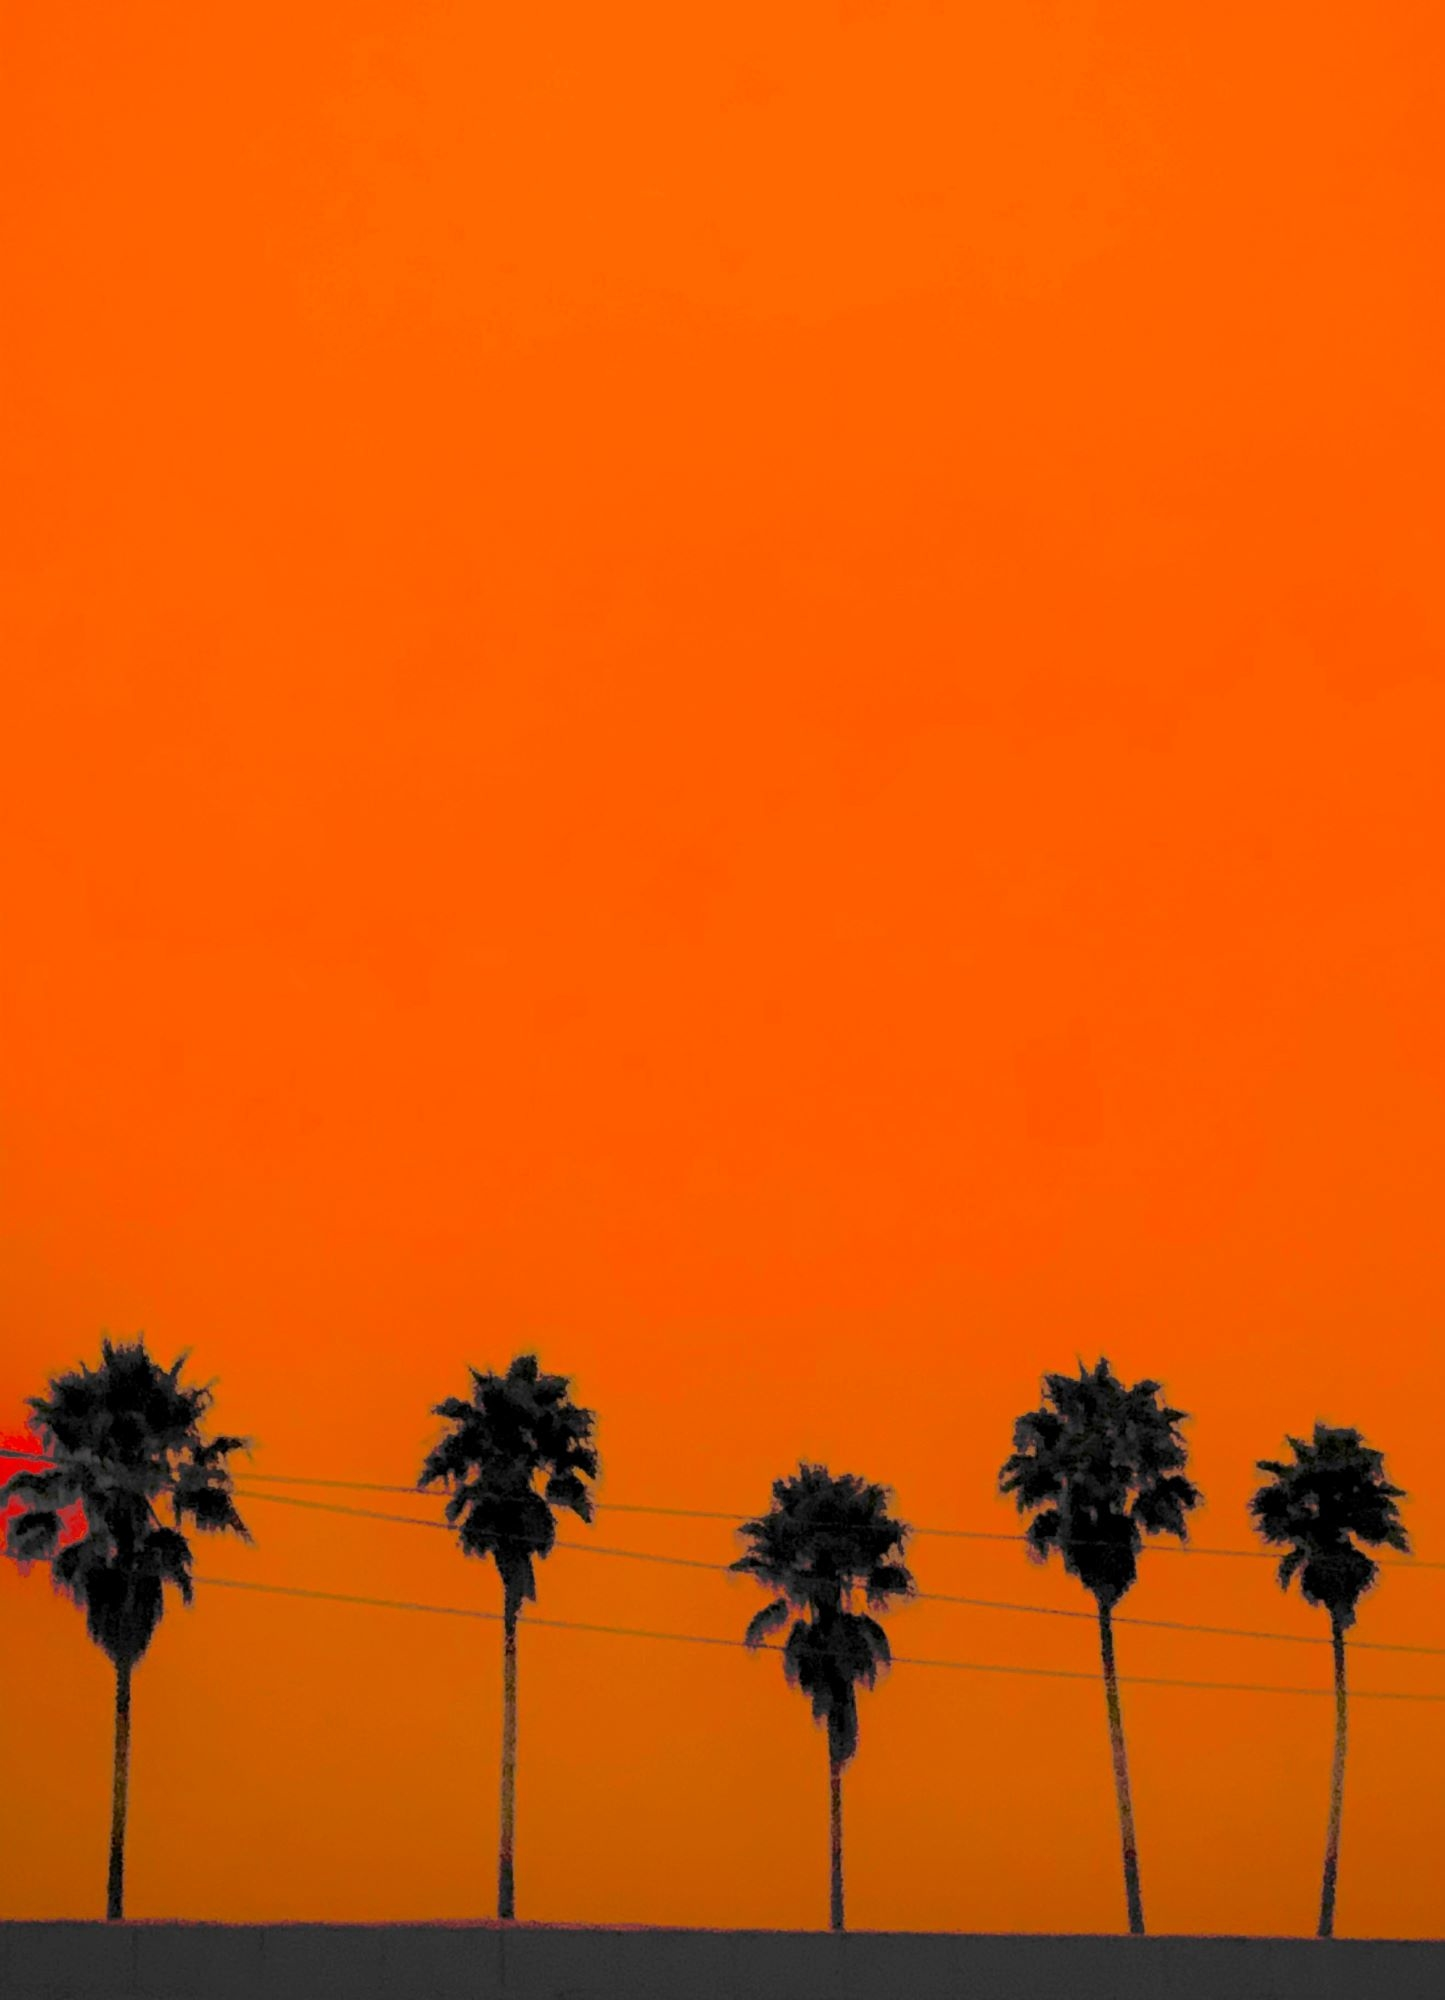 Black silhouettes of palm trees on a bright orange sky.